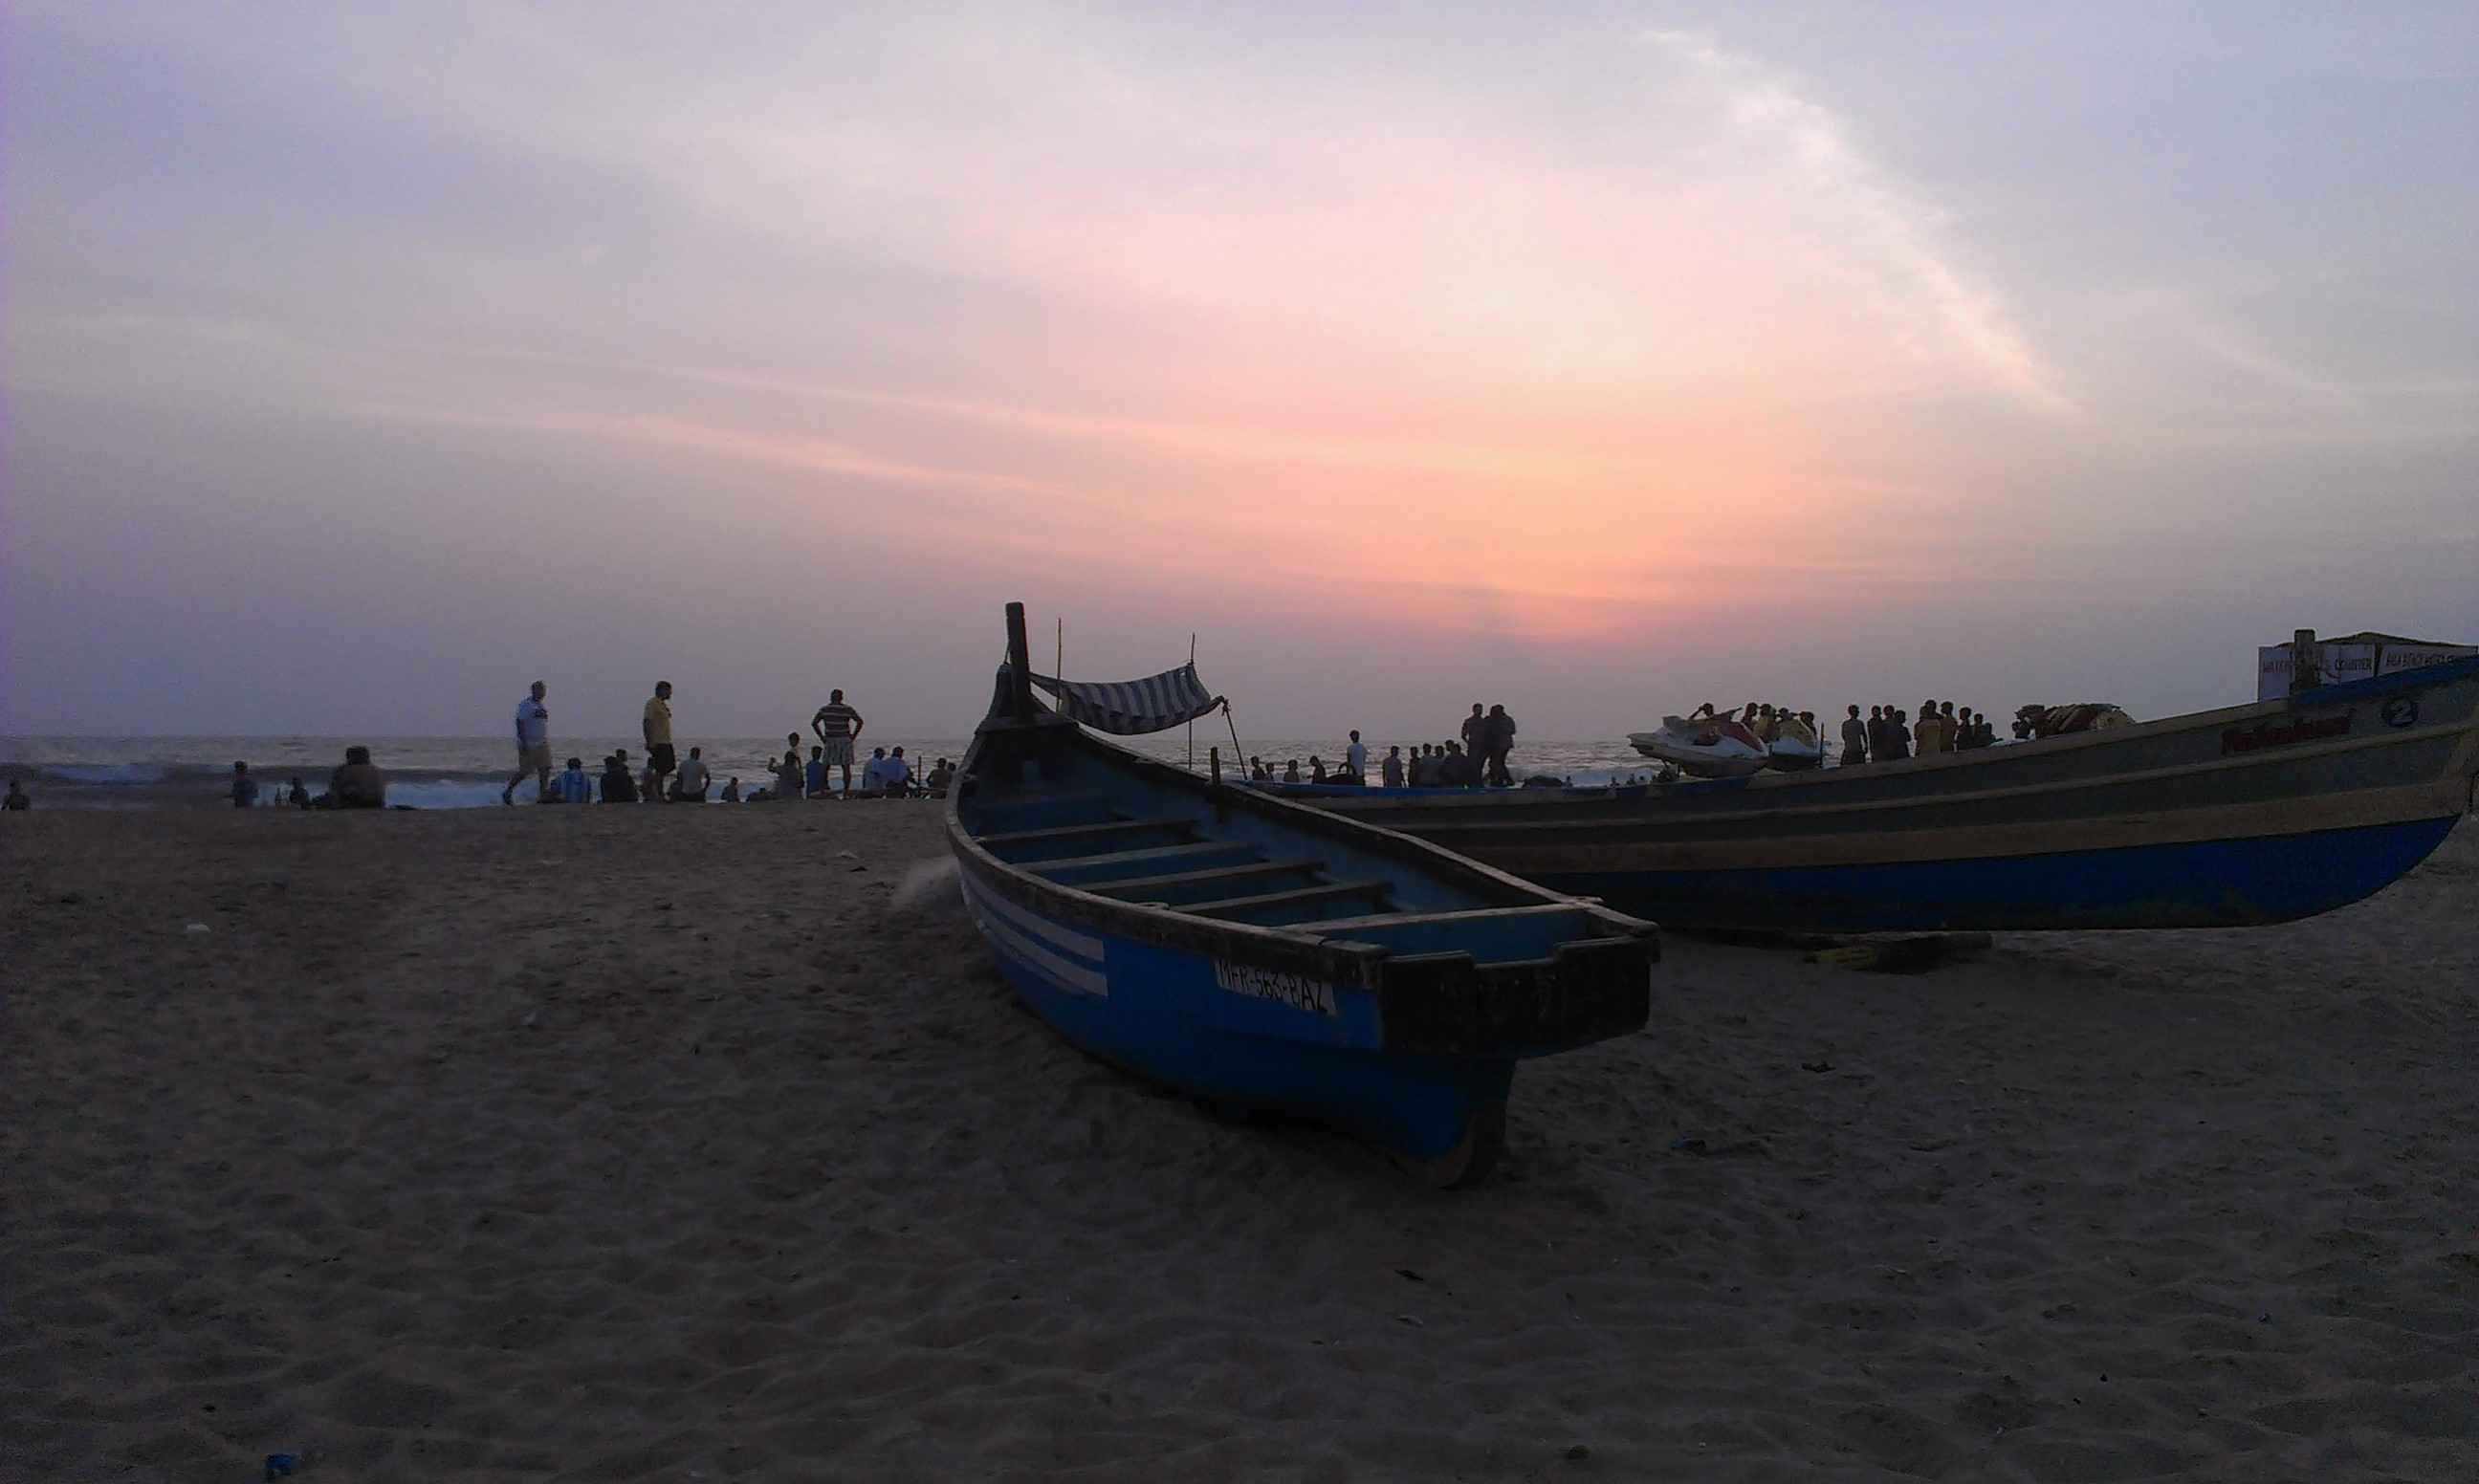 Baga - Crowded & Beautiful